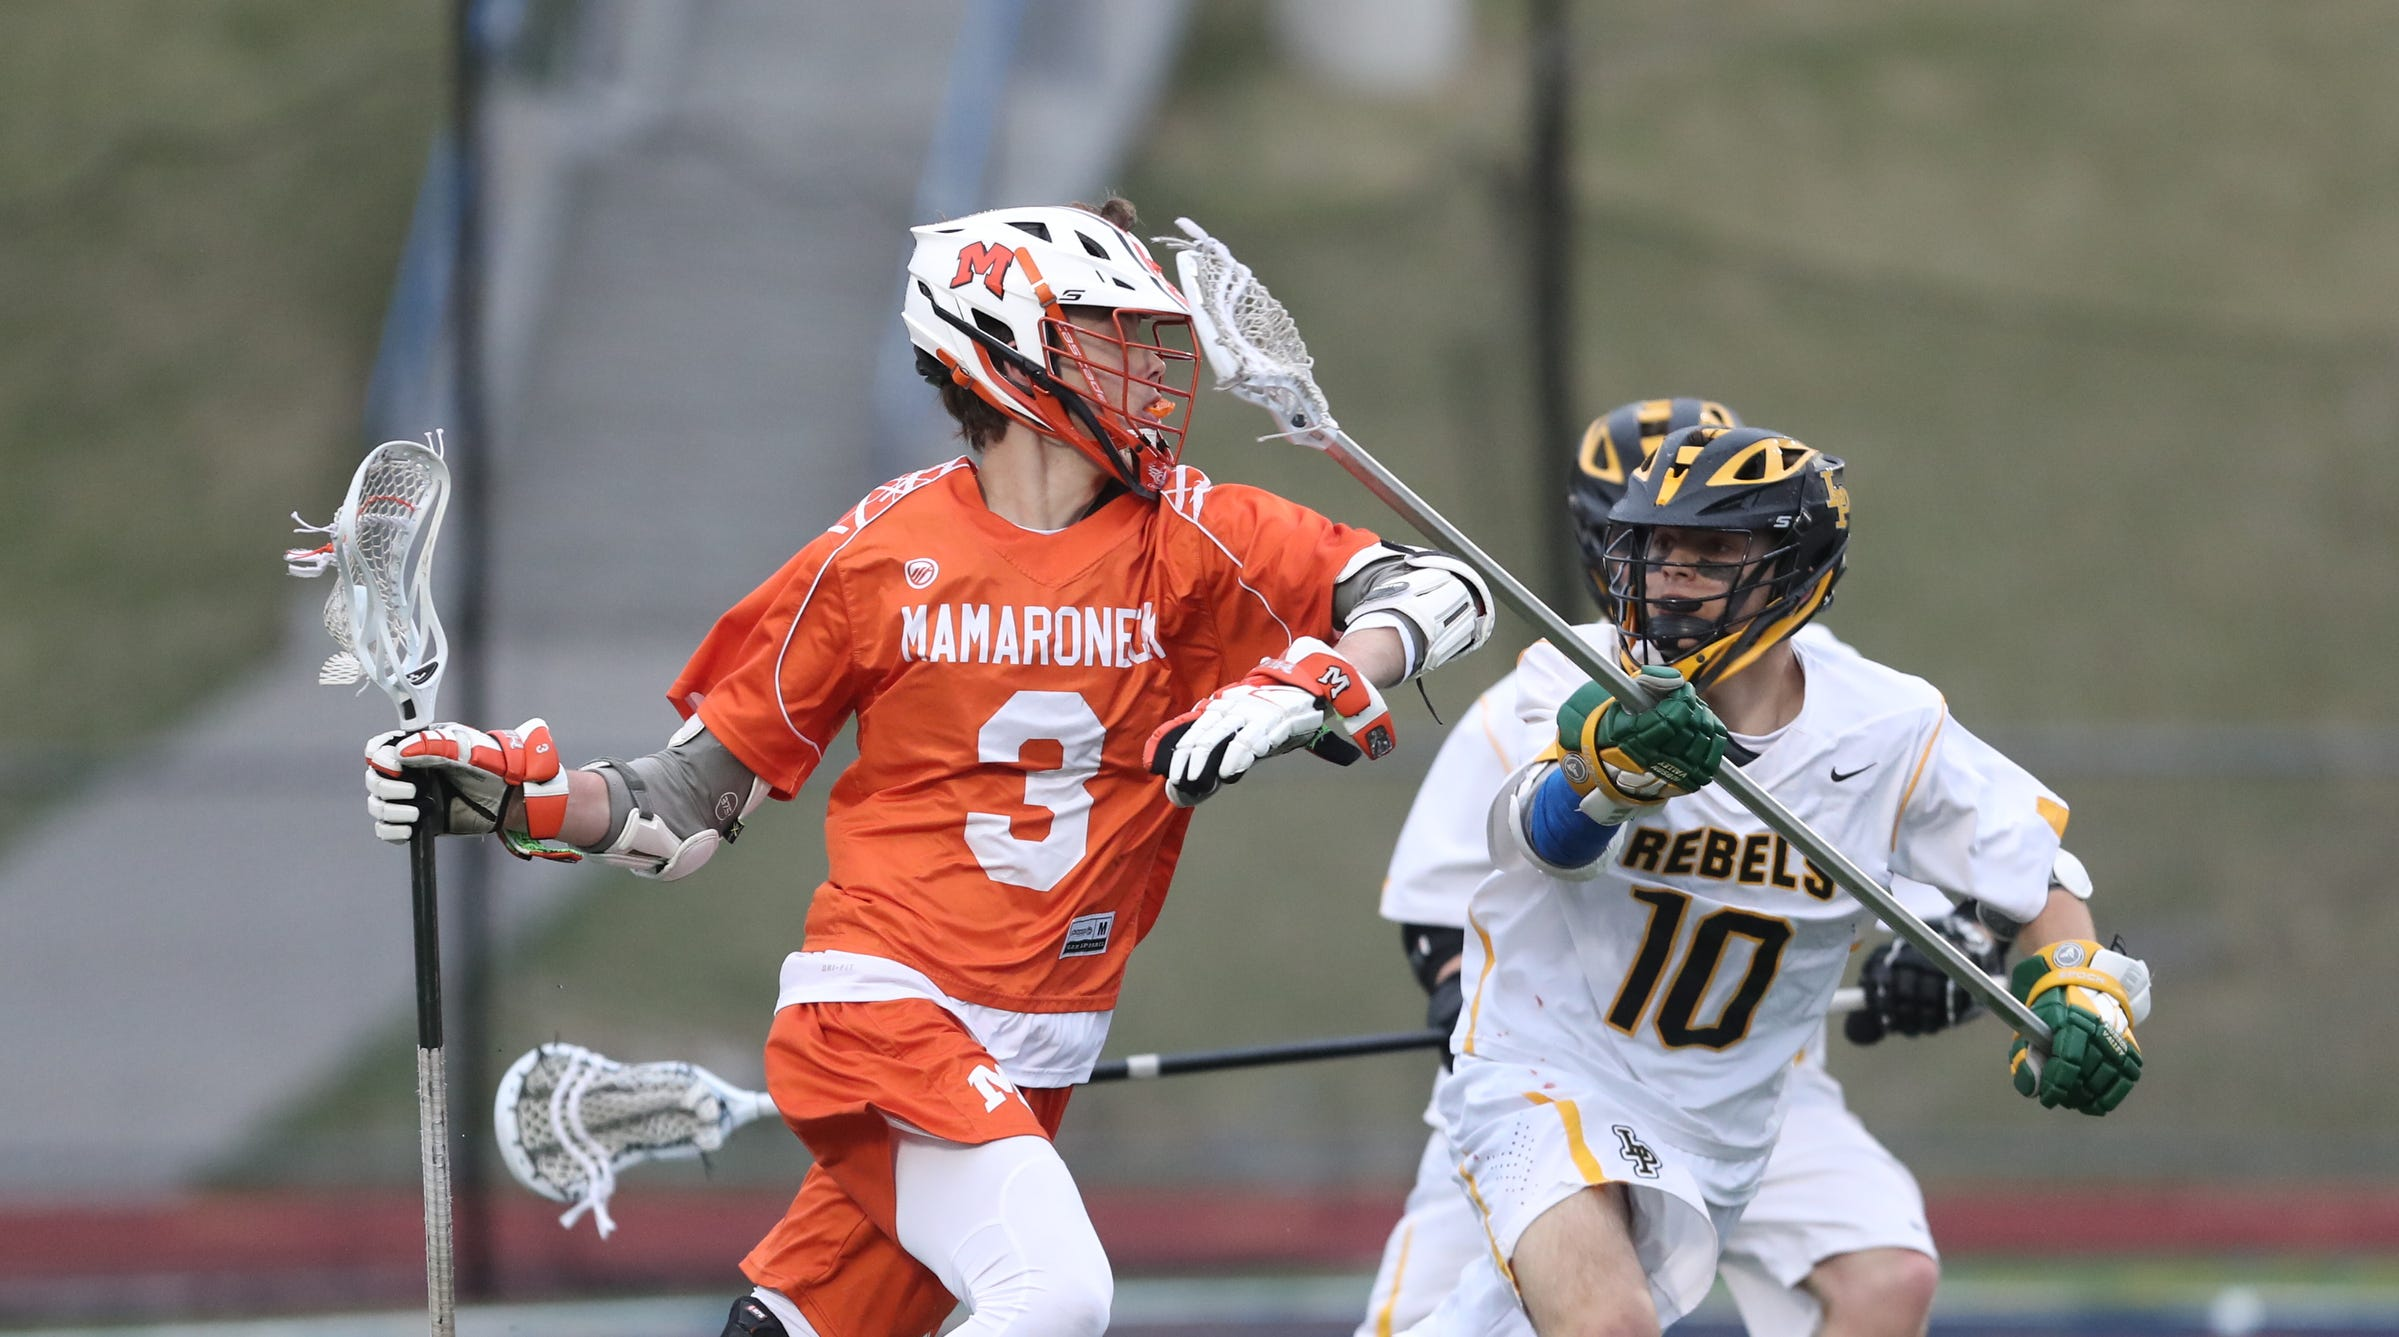 Mamaroneck's Wills Martin (3) works againstst Lakeland/Panas' Mark Cummins (10) during boys lacrosse action at Walter Panas High School in Cortlandt on Tuesday, April 9, 2019.